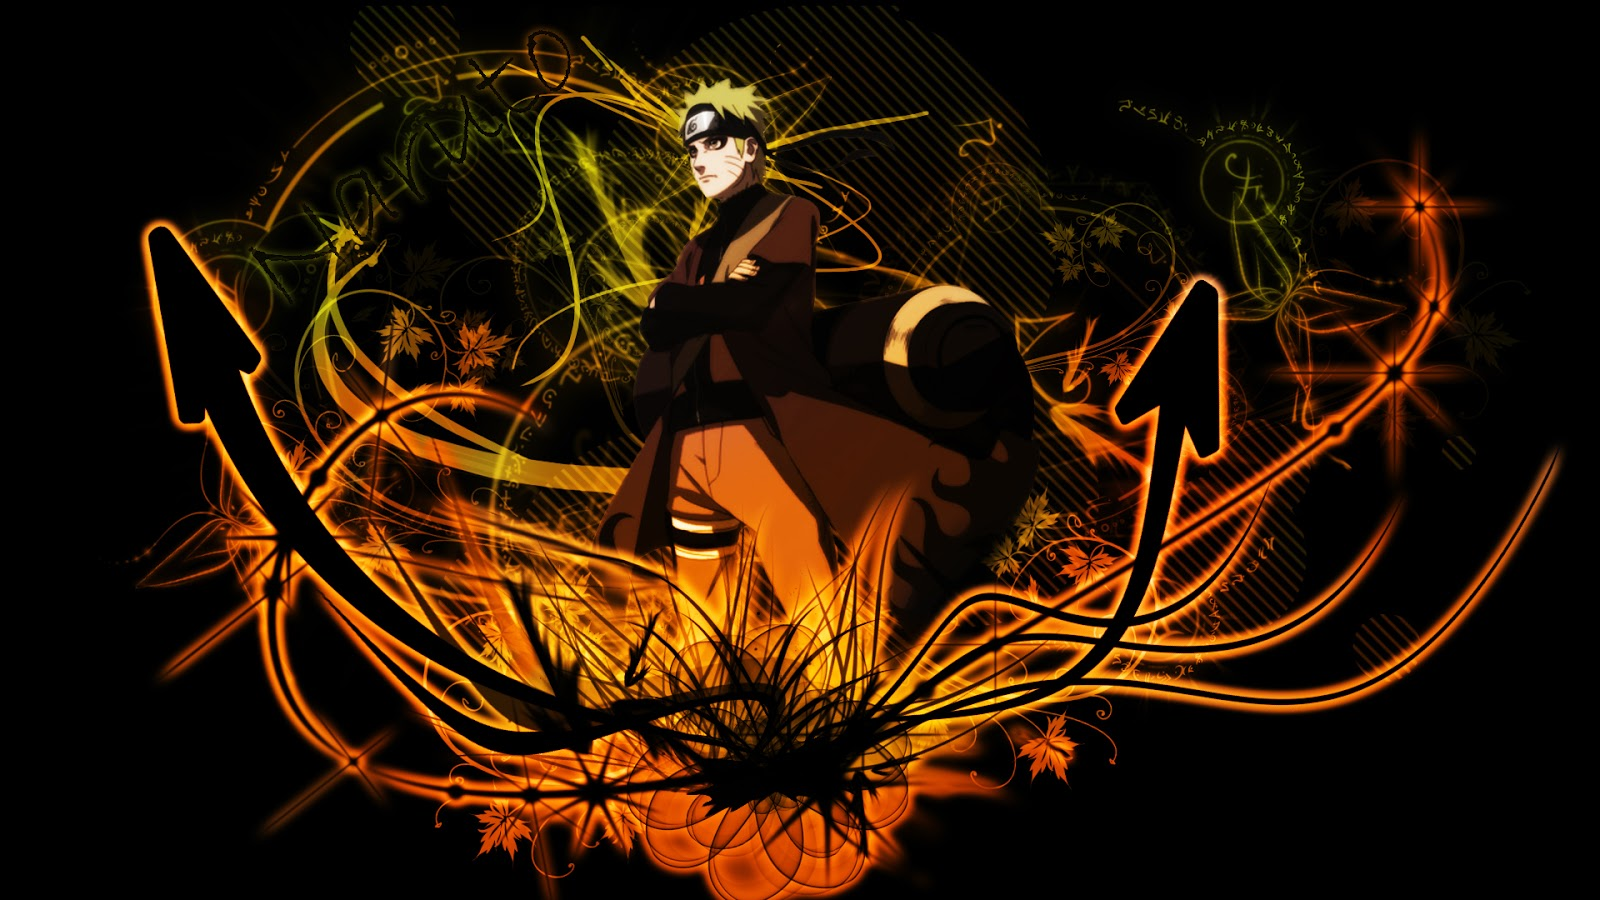 Narutoshippuden Naruto Shippuden Wallpaper Iphone 7